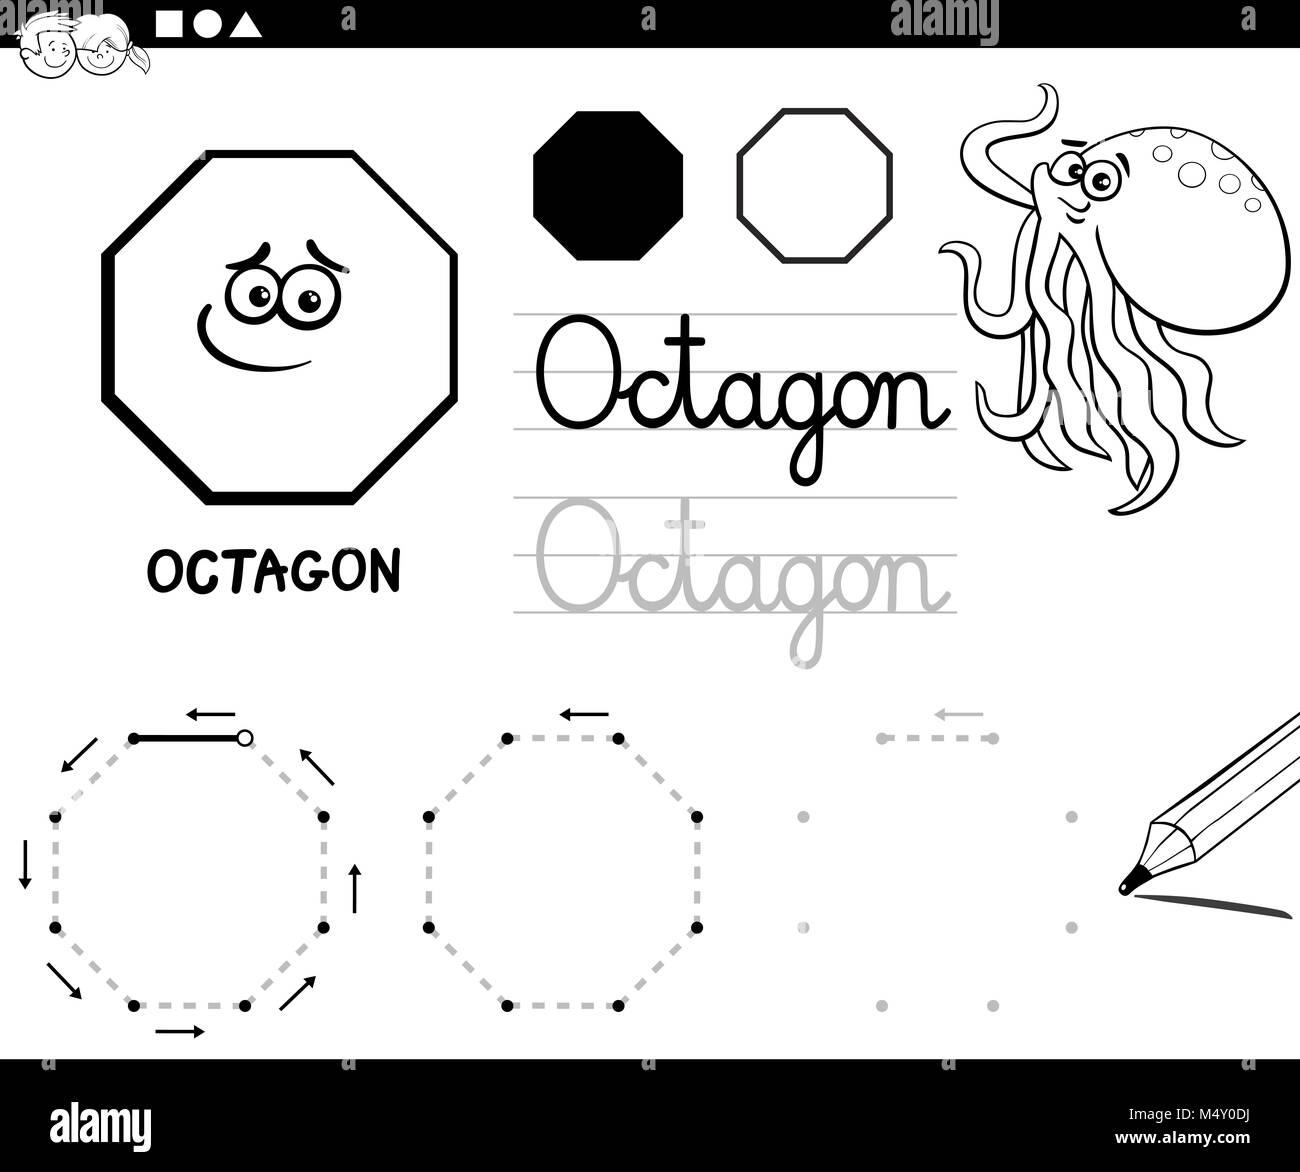 octagon coloring page.html